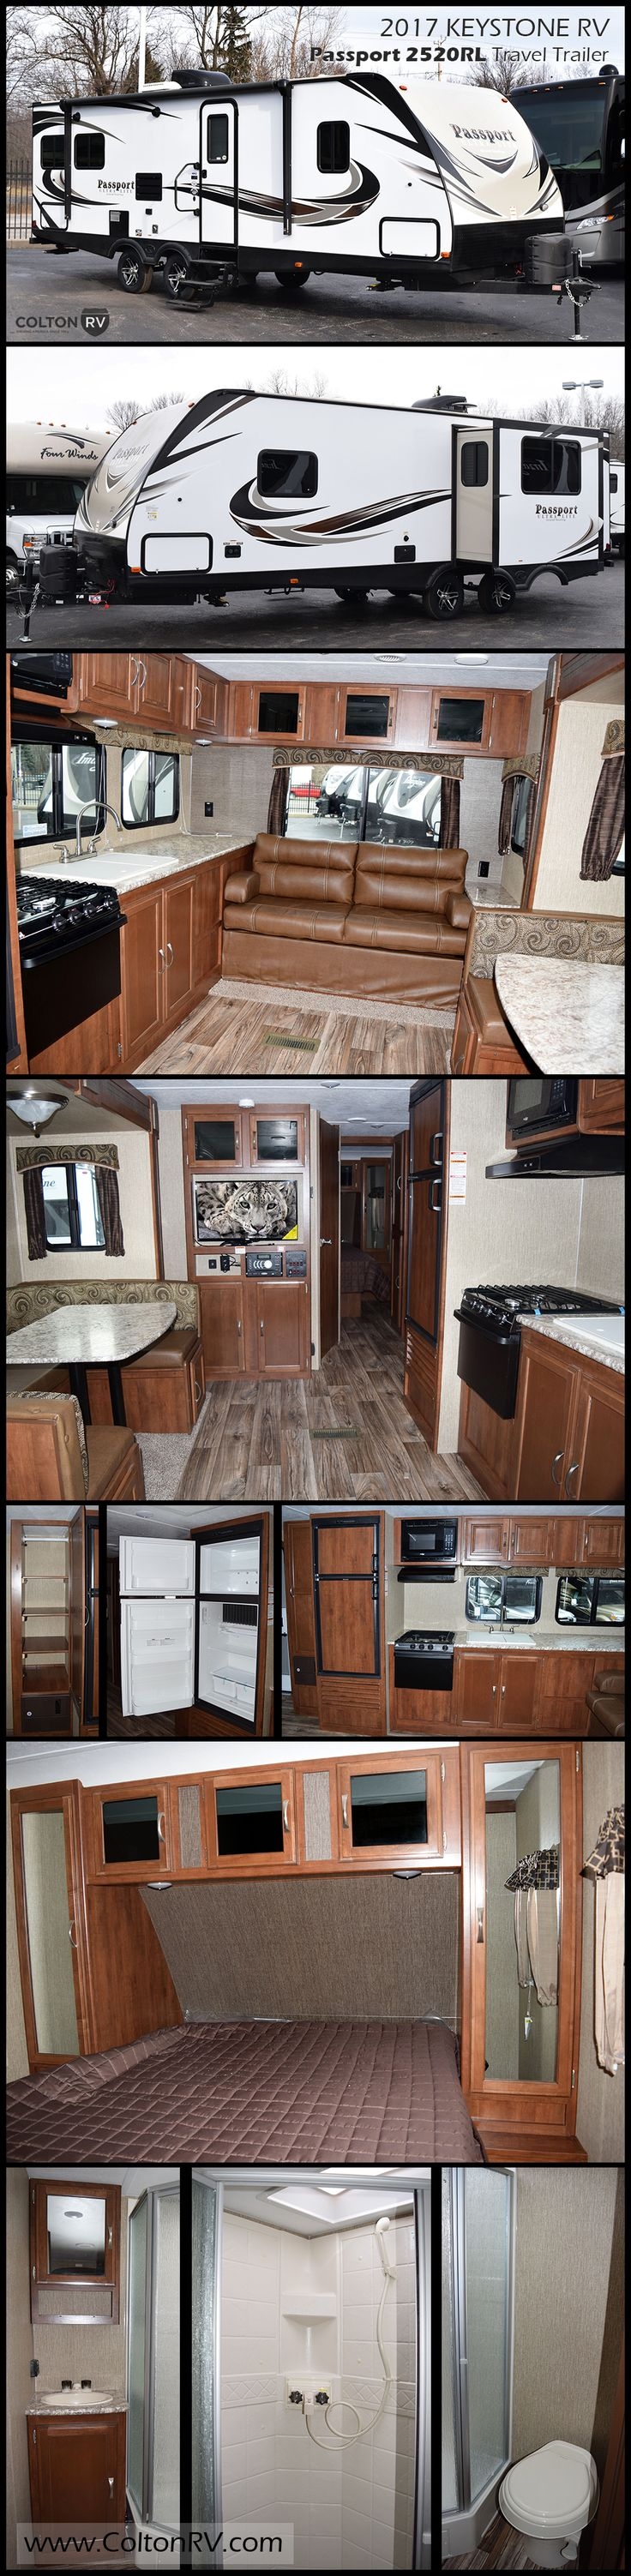 This PASSPORT GRAND TOURING 2520RL travel trailer by KEYSTONE RV allows you to enjoy the added space from the kitchen/living room slide, private front bedroom and much more! Because Passport is lighter and fully equipped, it is easier to grab and go, giving you plenty of opportunity to hit the road on a moment's notice.